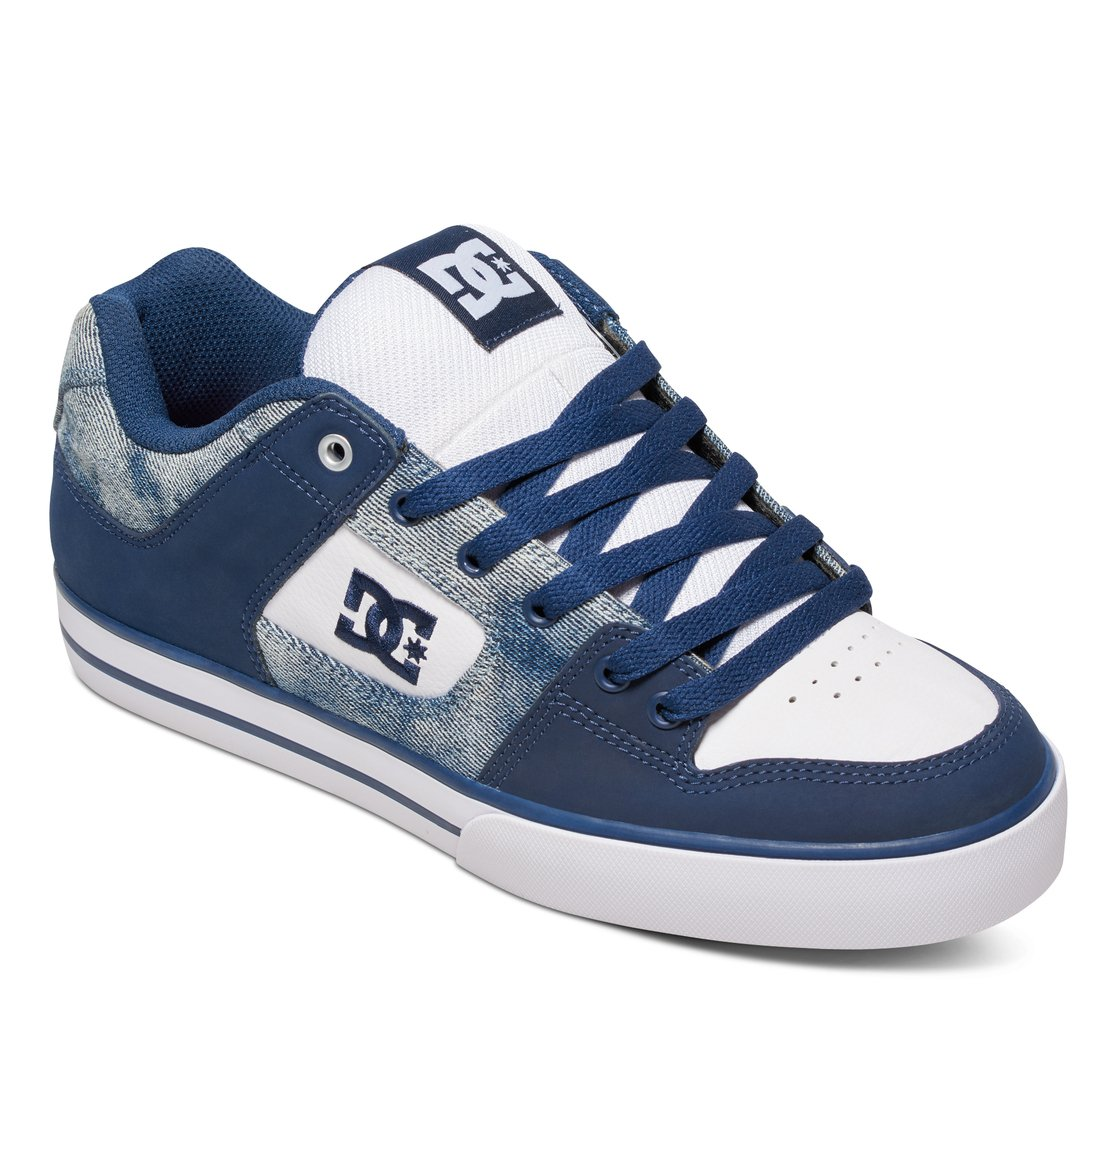 dc shoes pure se chaussures basses pour homme 301024 ebay. Black Bedroom Furniture Sets. Home Design Ideas